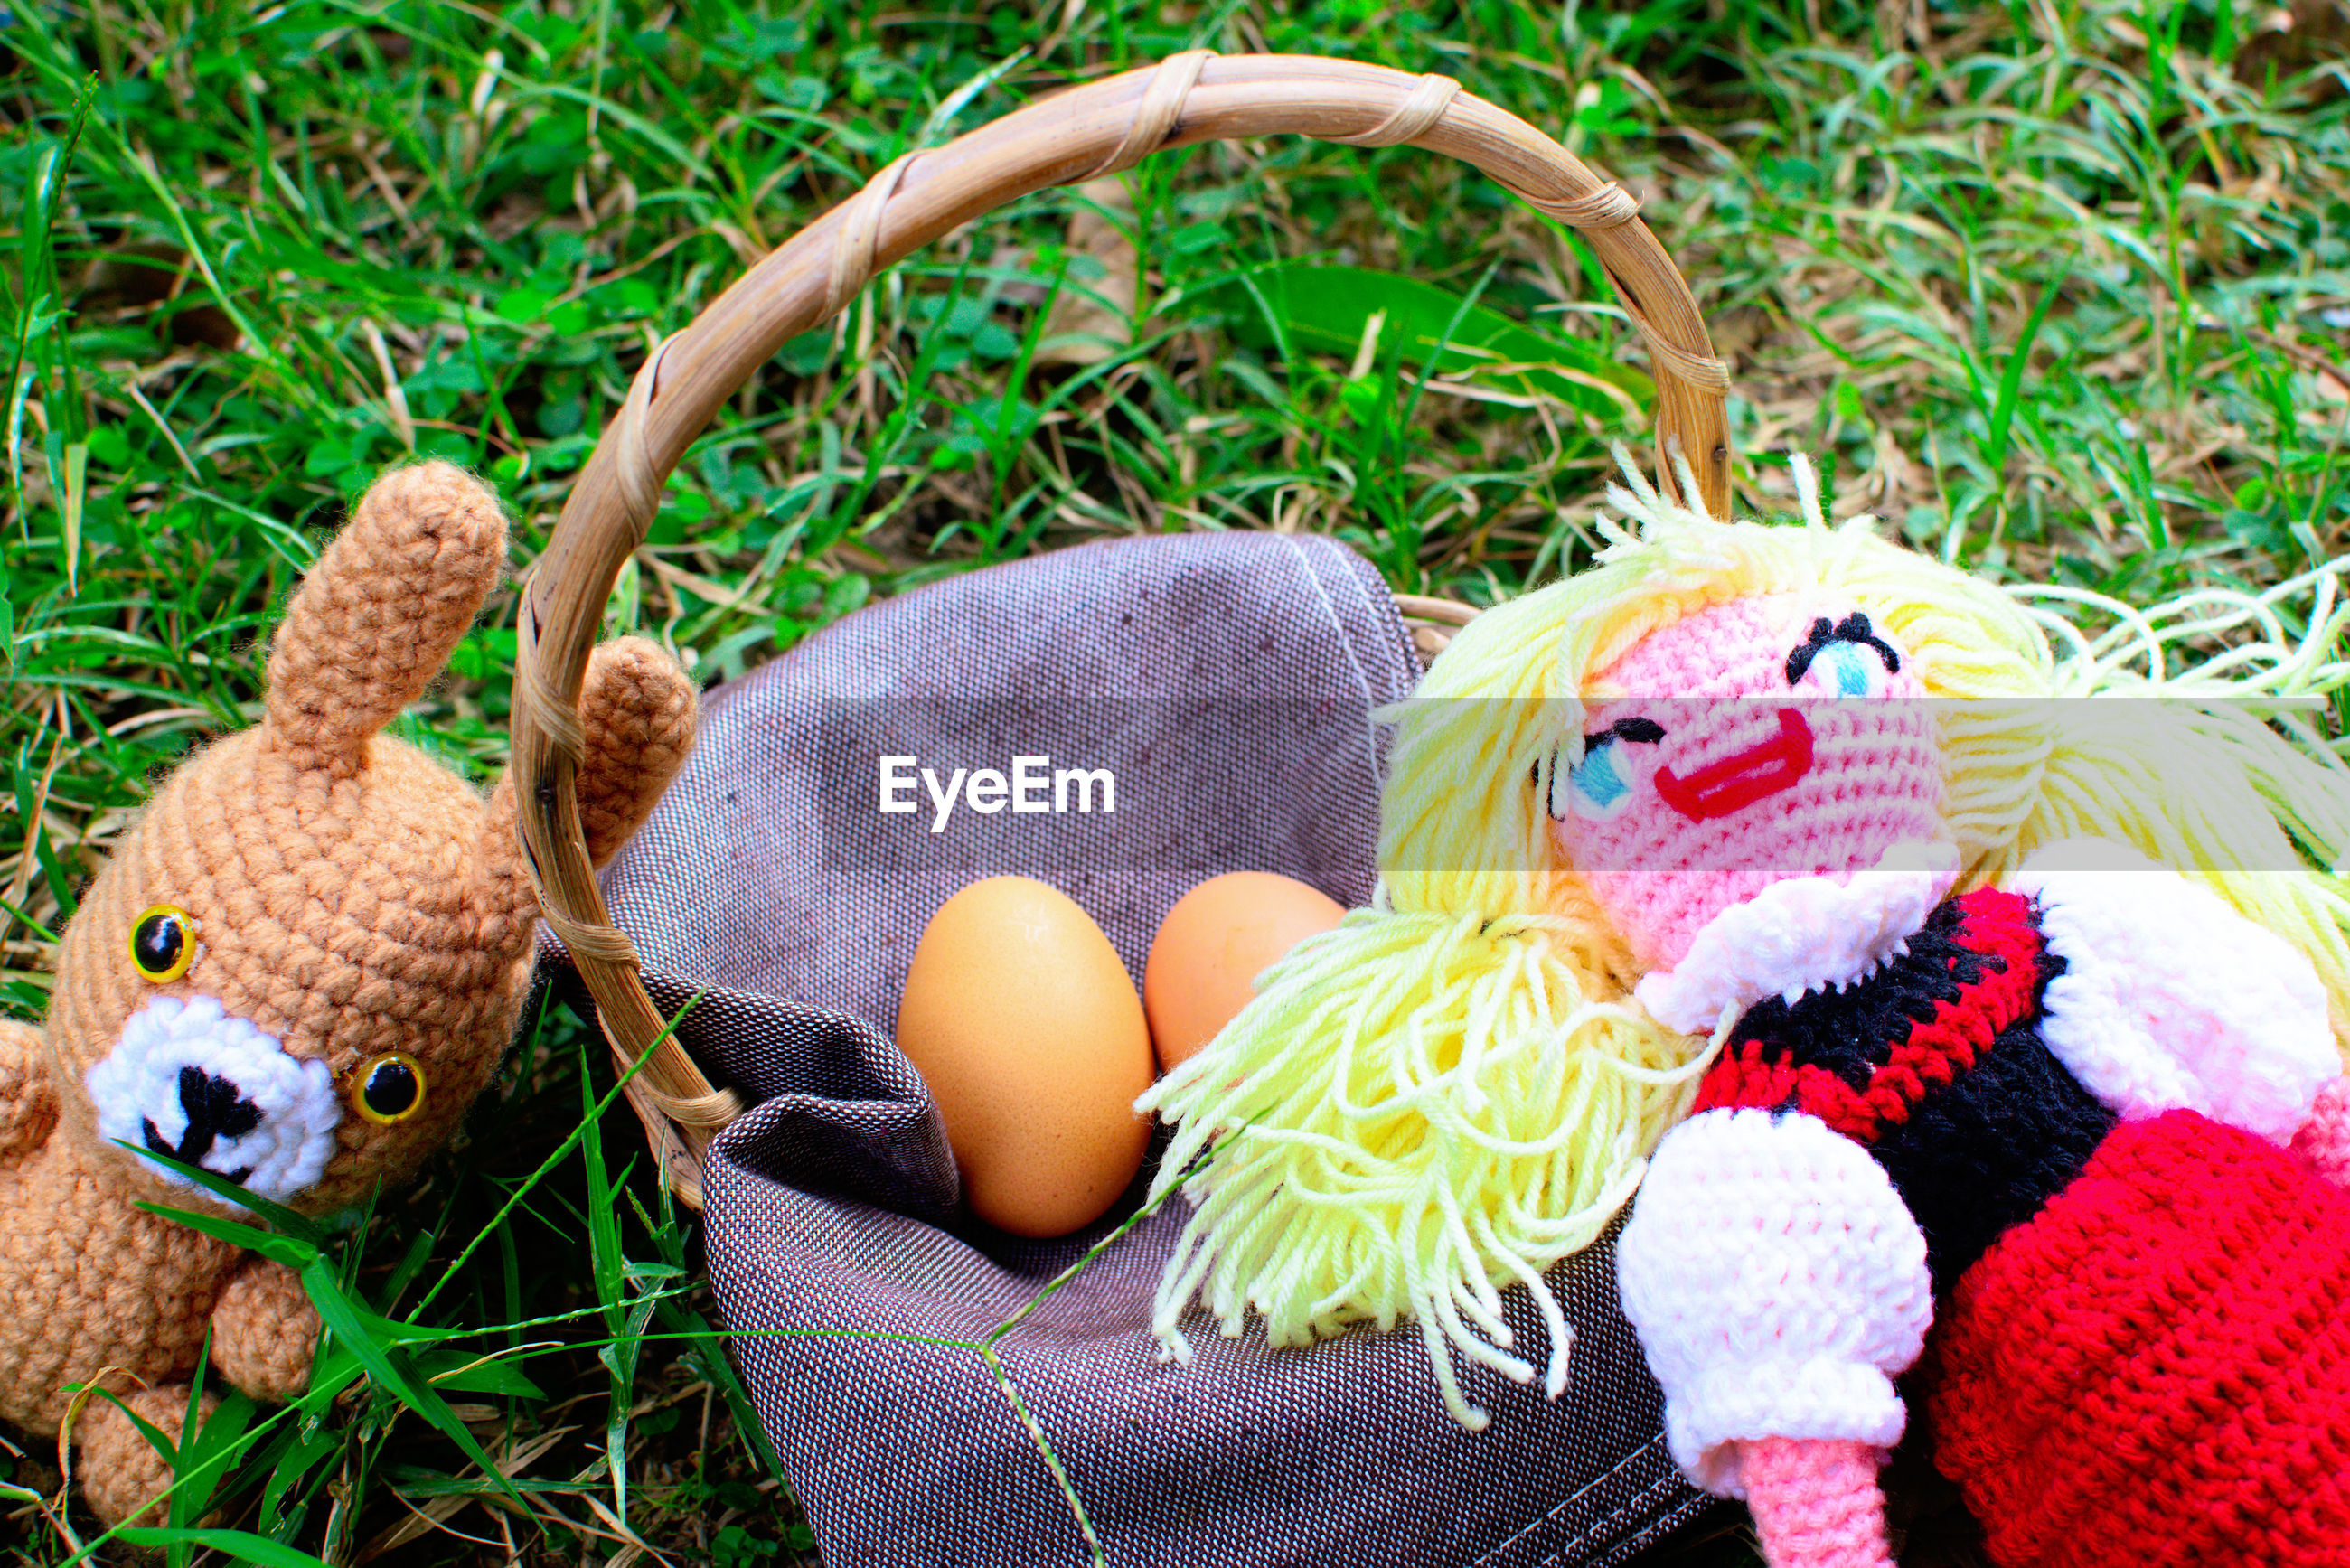 Close-up of multi colored stuffed toys with eggs on grass